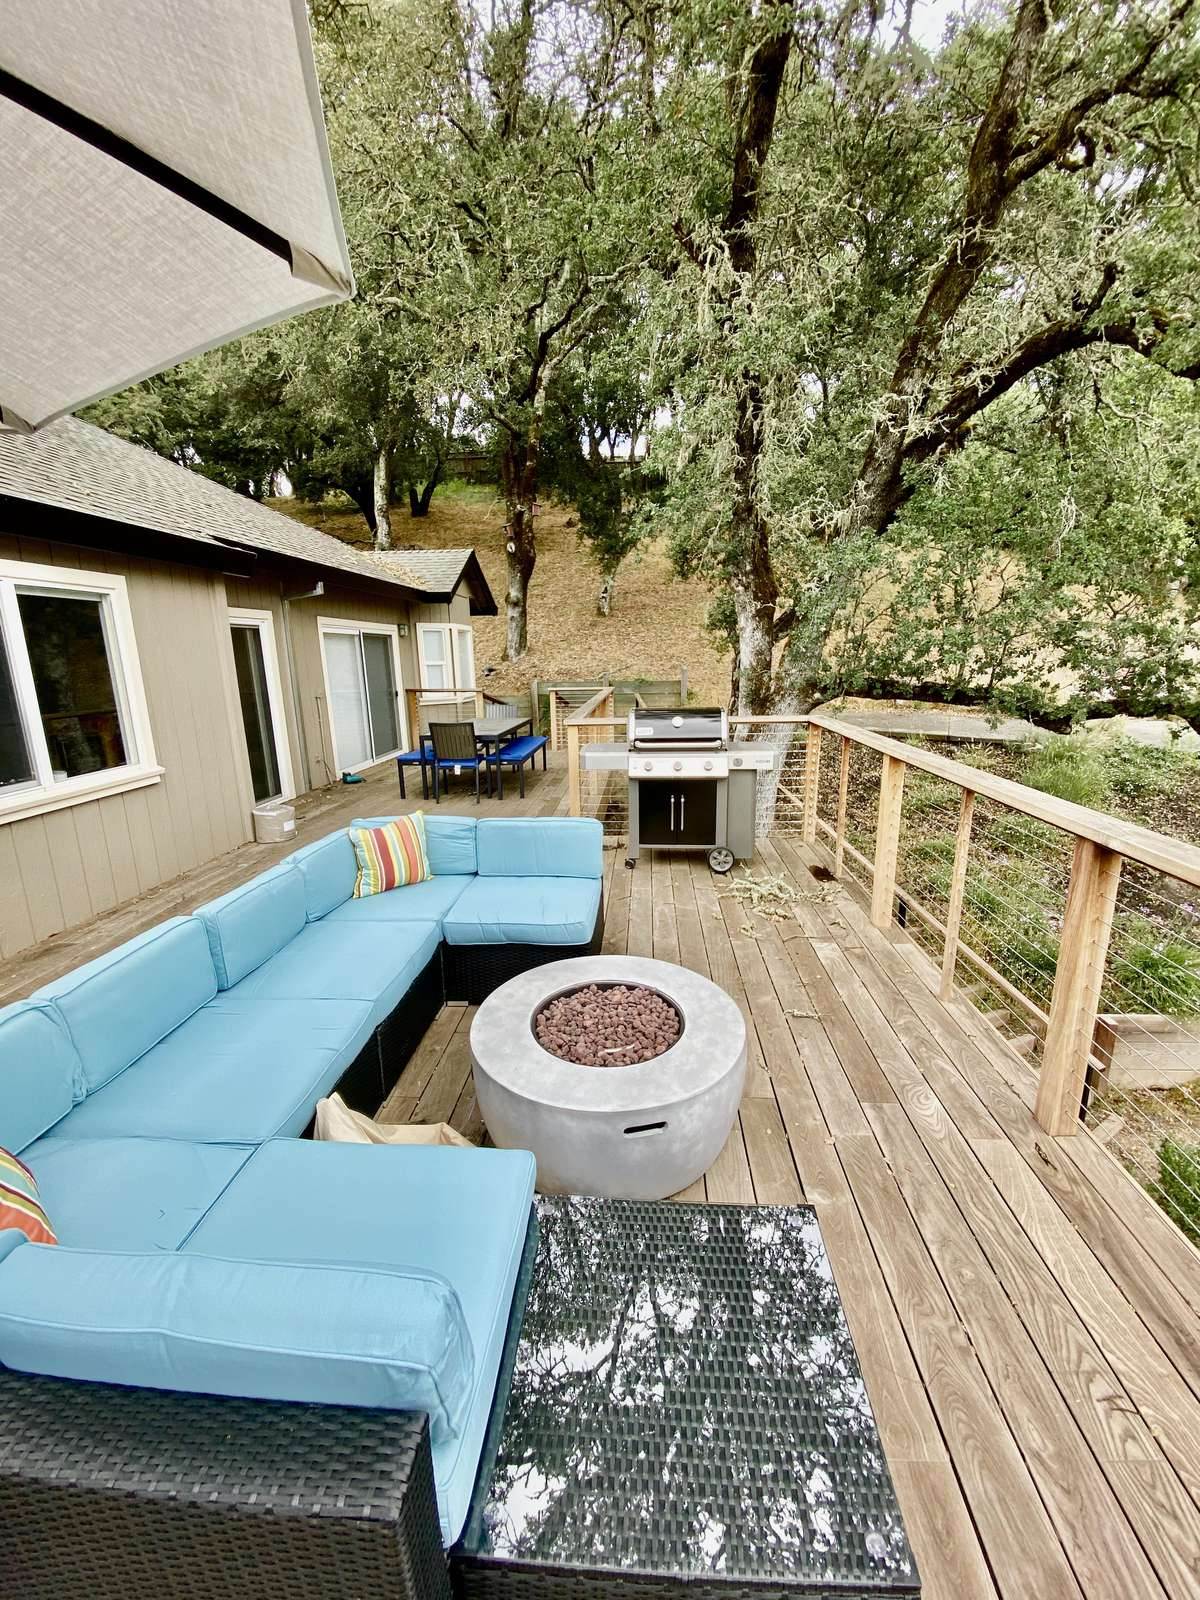 Expansive deck with lounge, fire pit and Weber BBQ grill